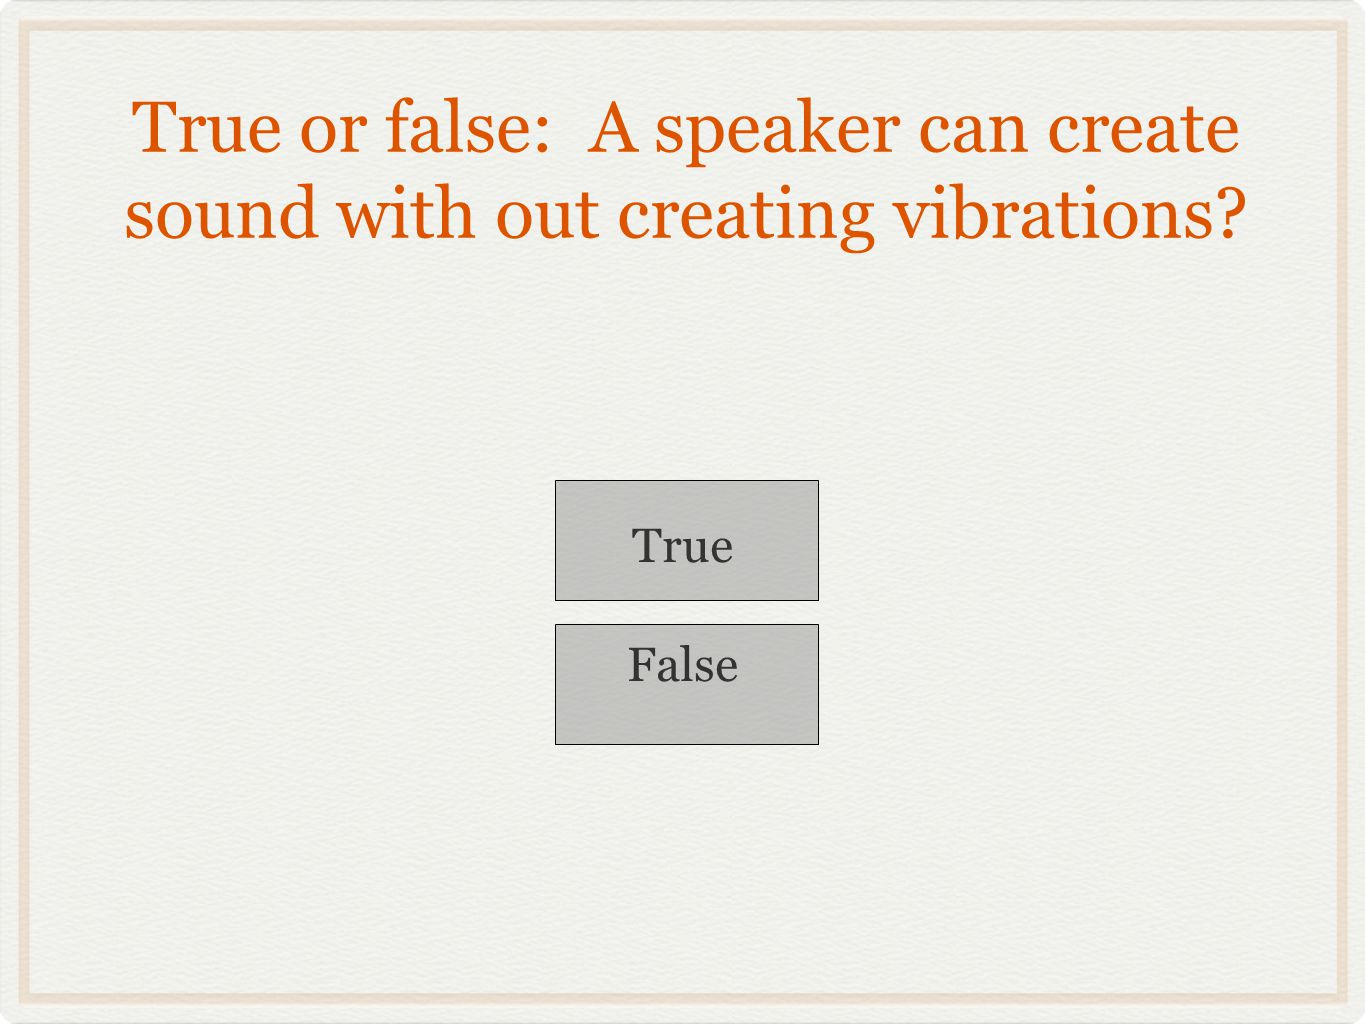 True or false: A speaker can create sound with out creating vibrations